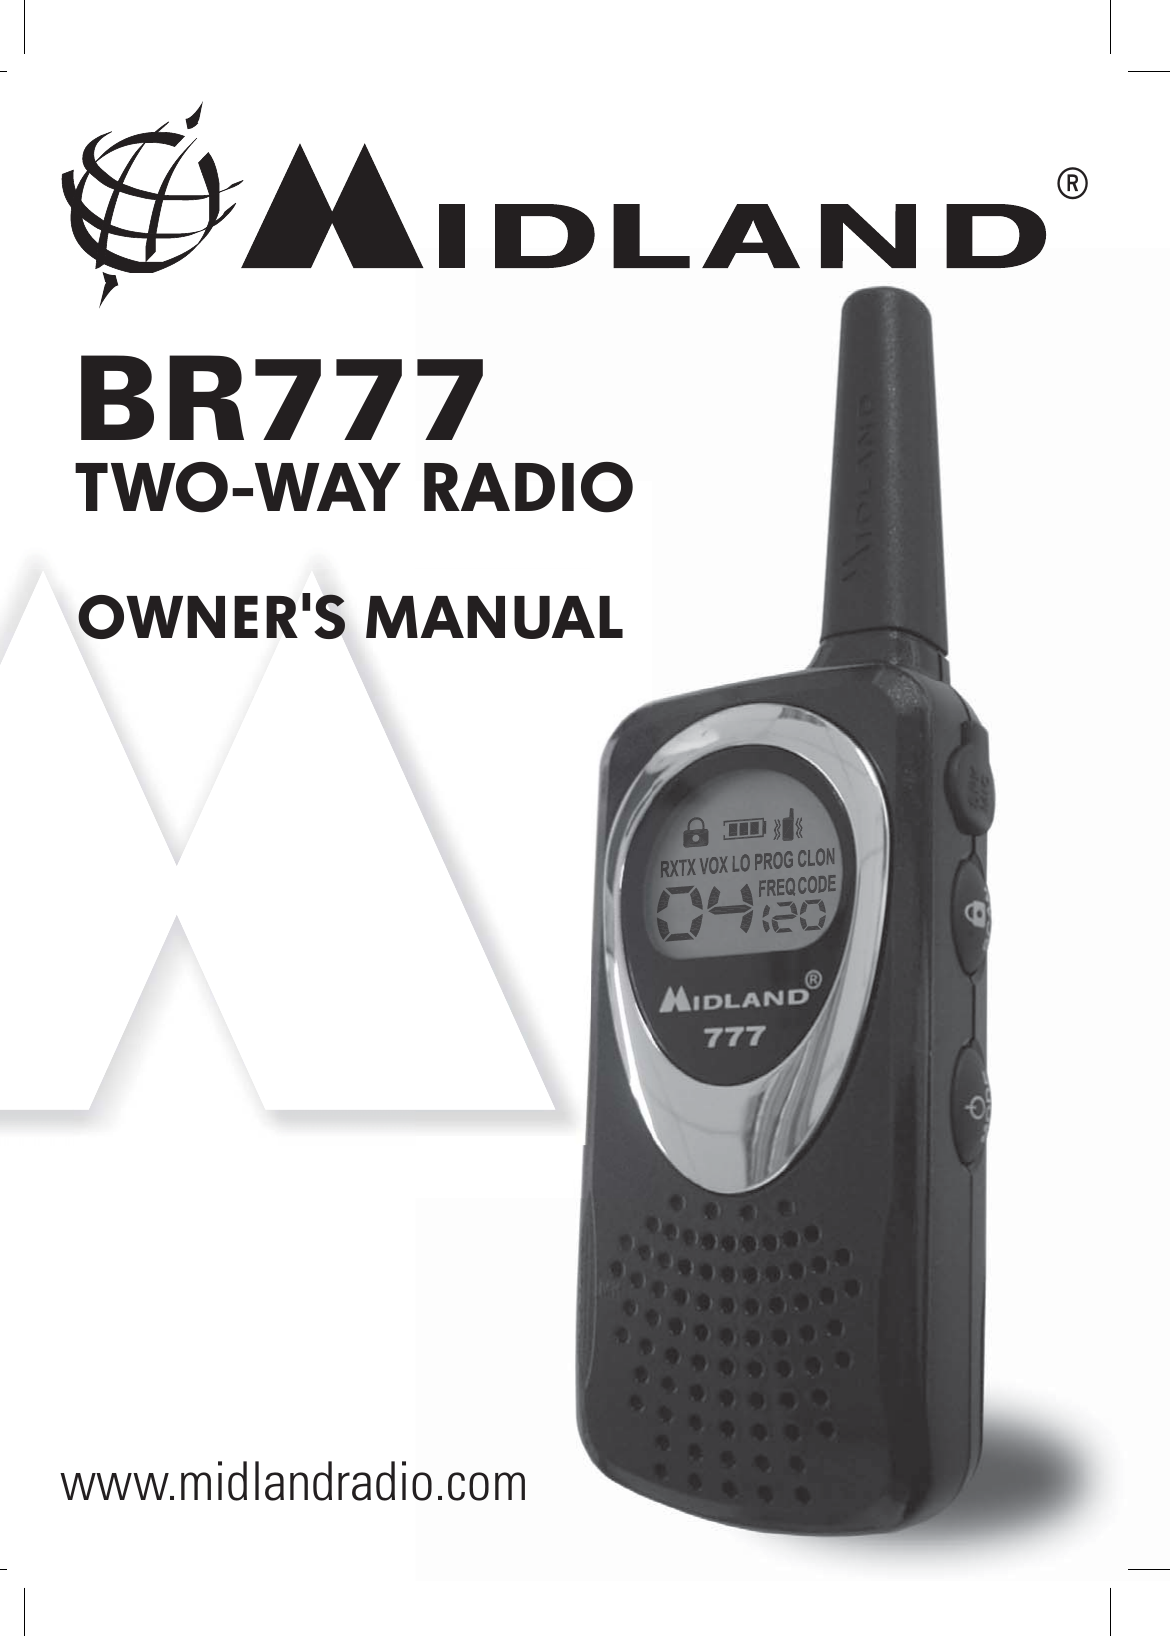 midland radio br777 4ch land mobile transceiver user manual br777 rh usermanual wiki Word Manual Guide User Guide Icon